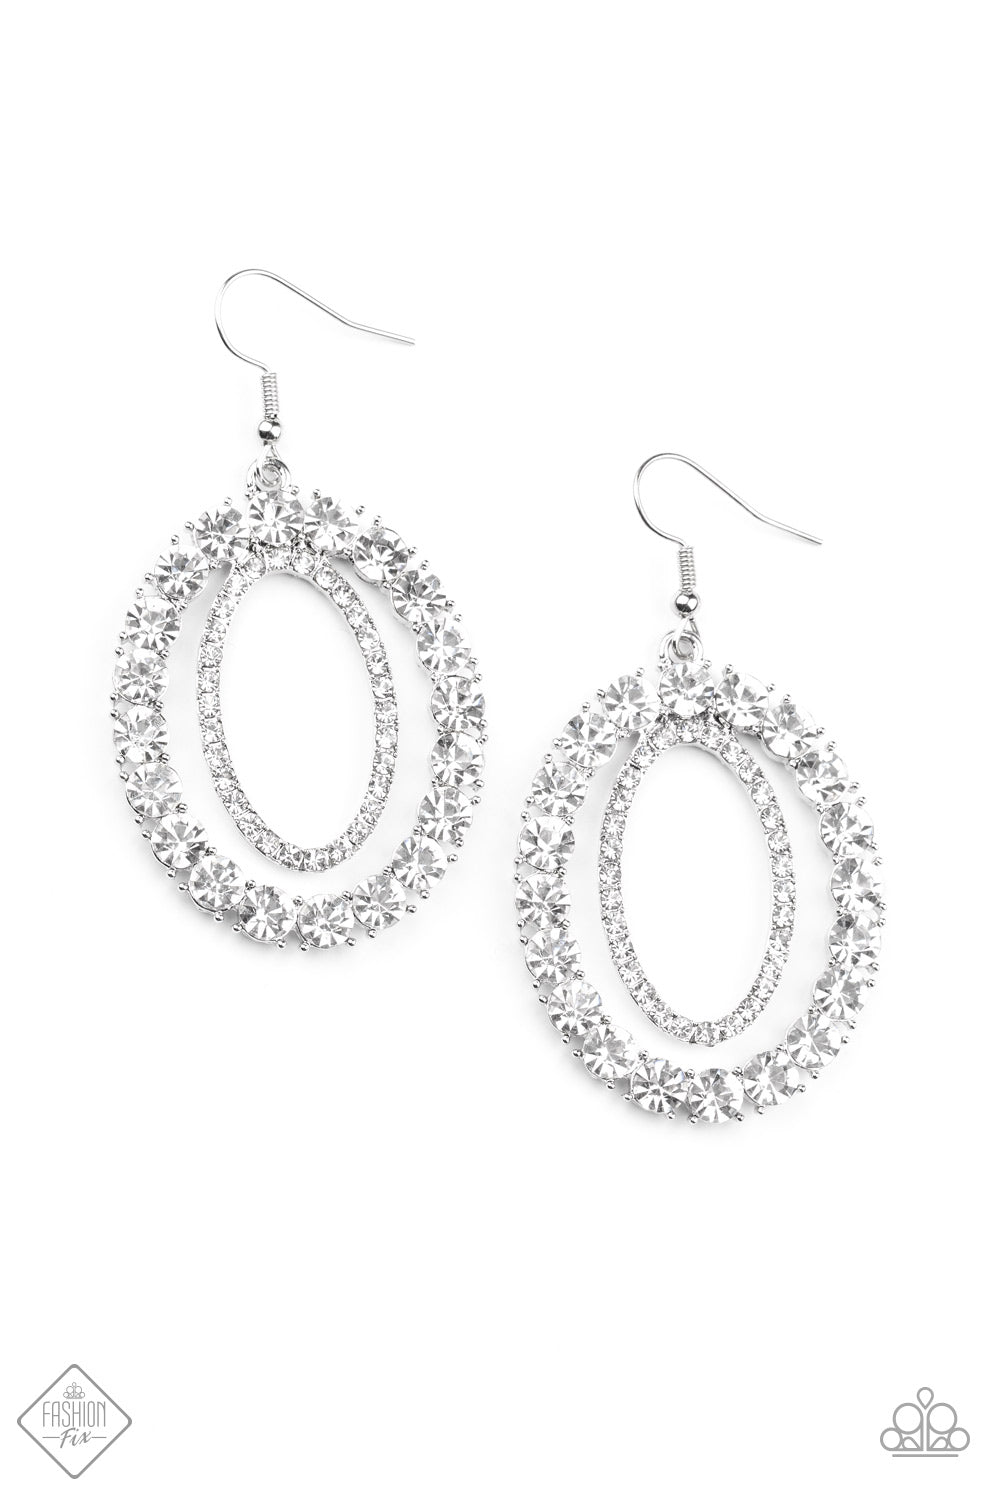 Paparazzi Earrings ~ Deluxe Luxury - Fashion Fix Nov 2020 - White